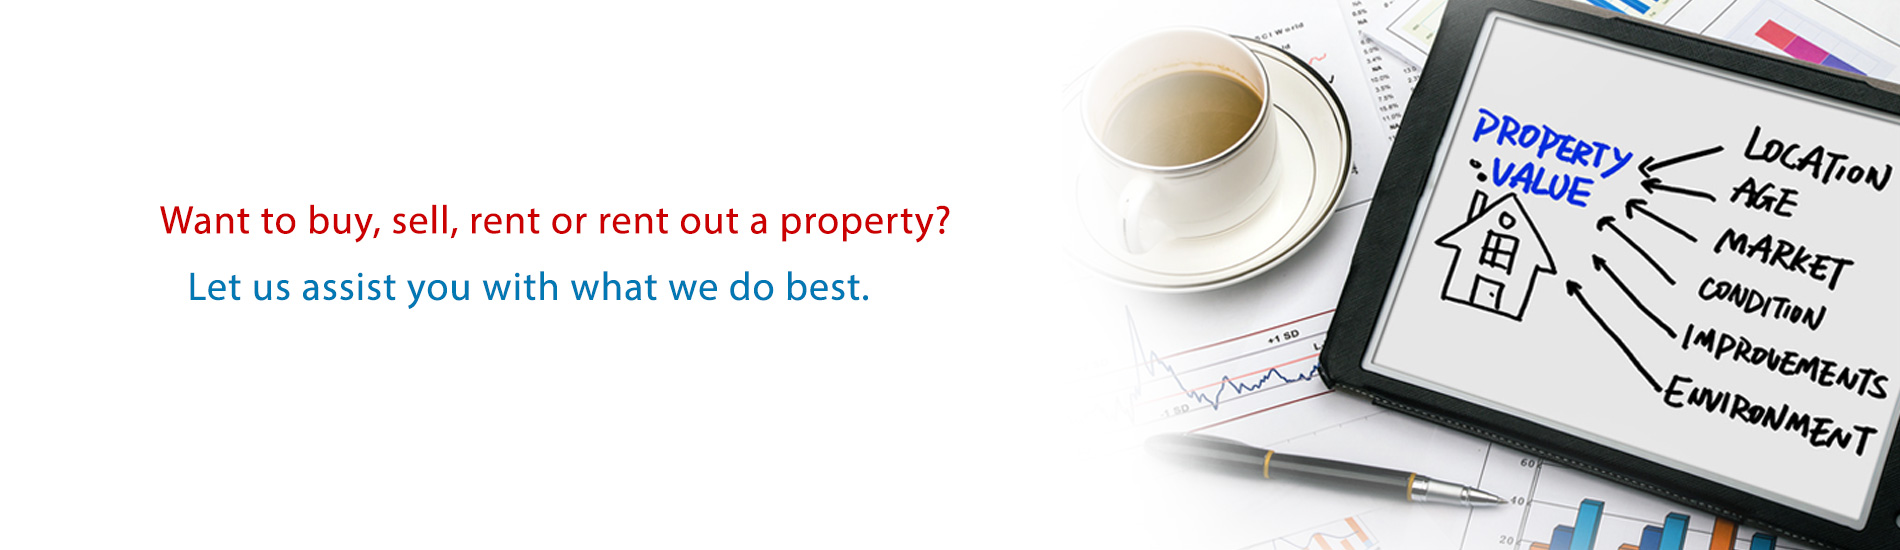 Want to sell, buy, rent or rent out a property.